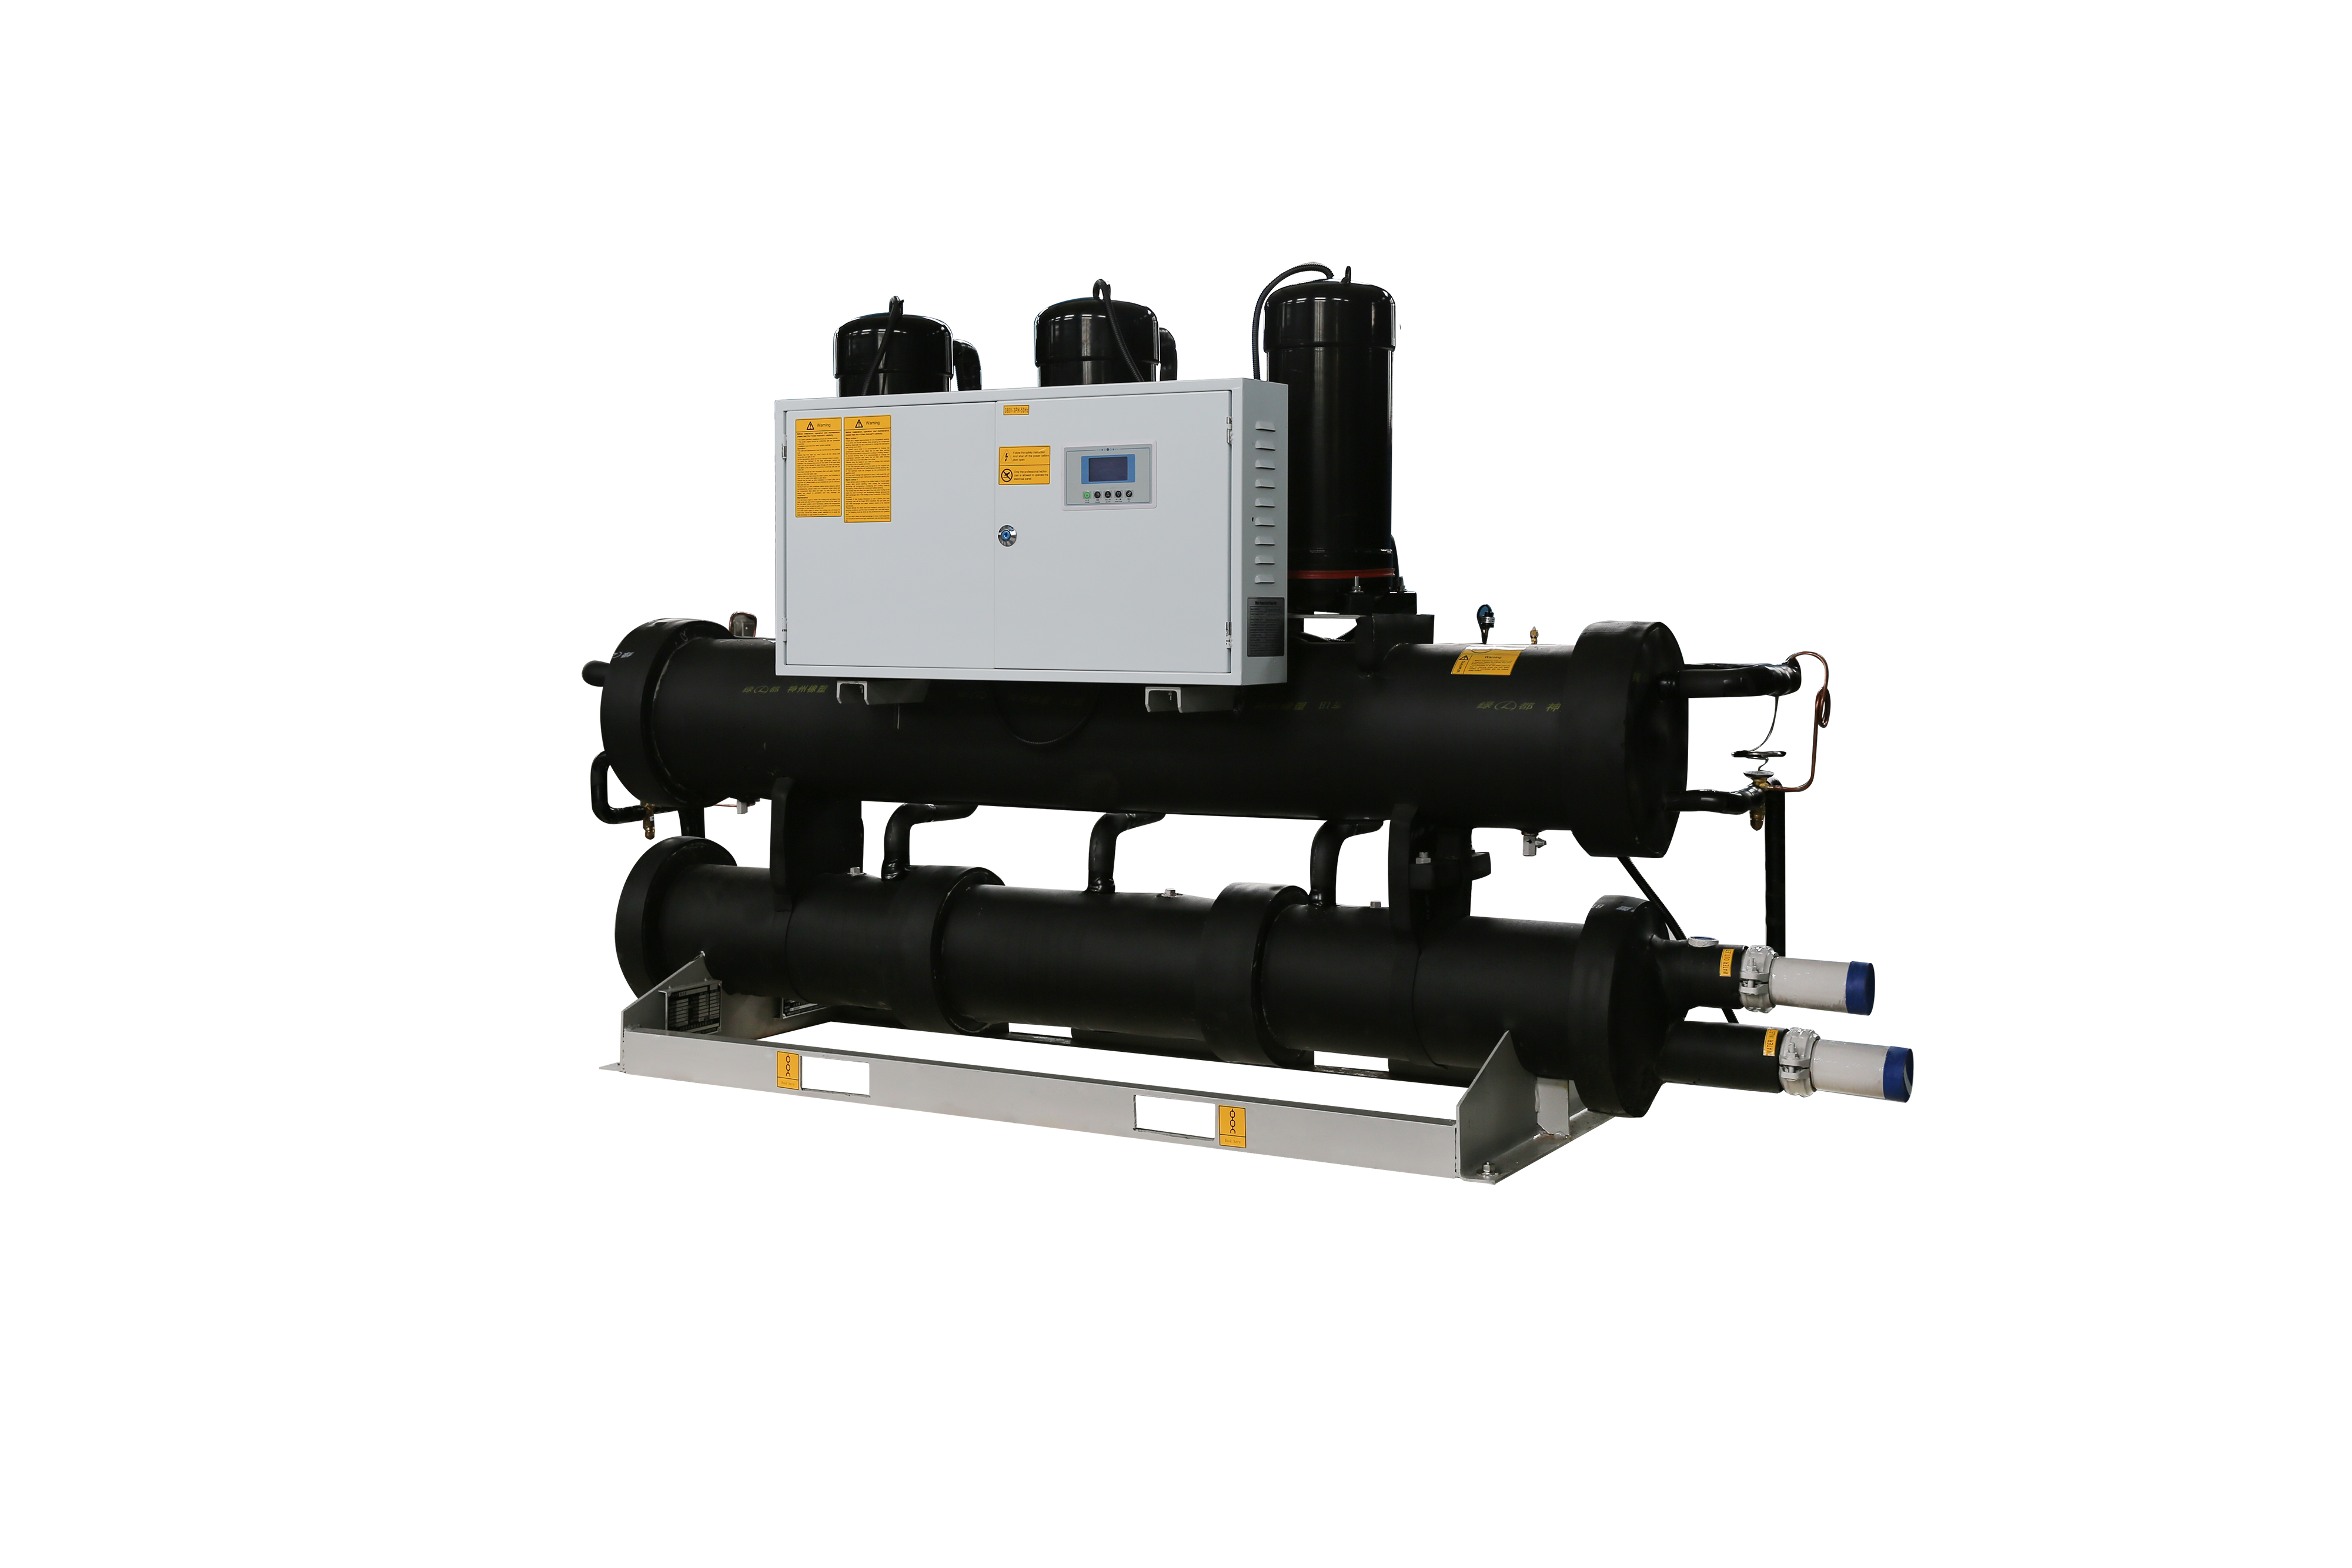 117kW Water Cooled Modular Chiller